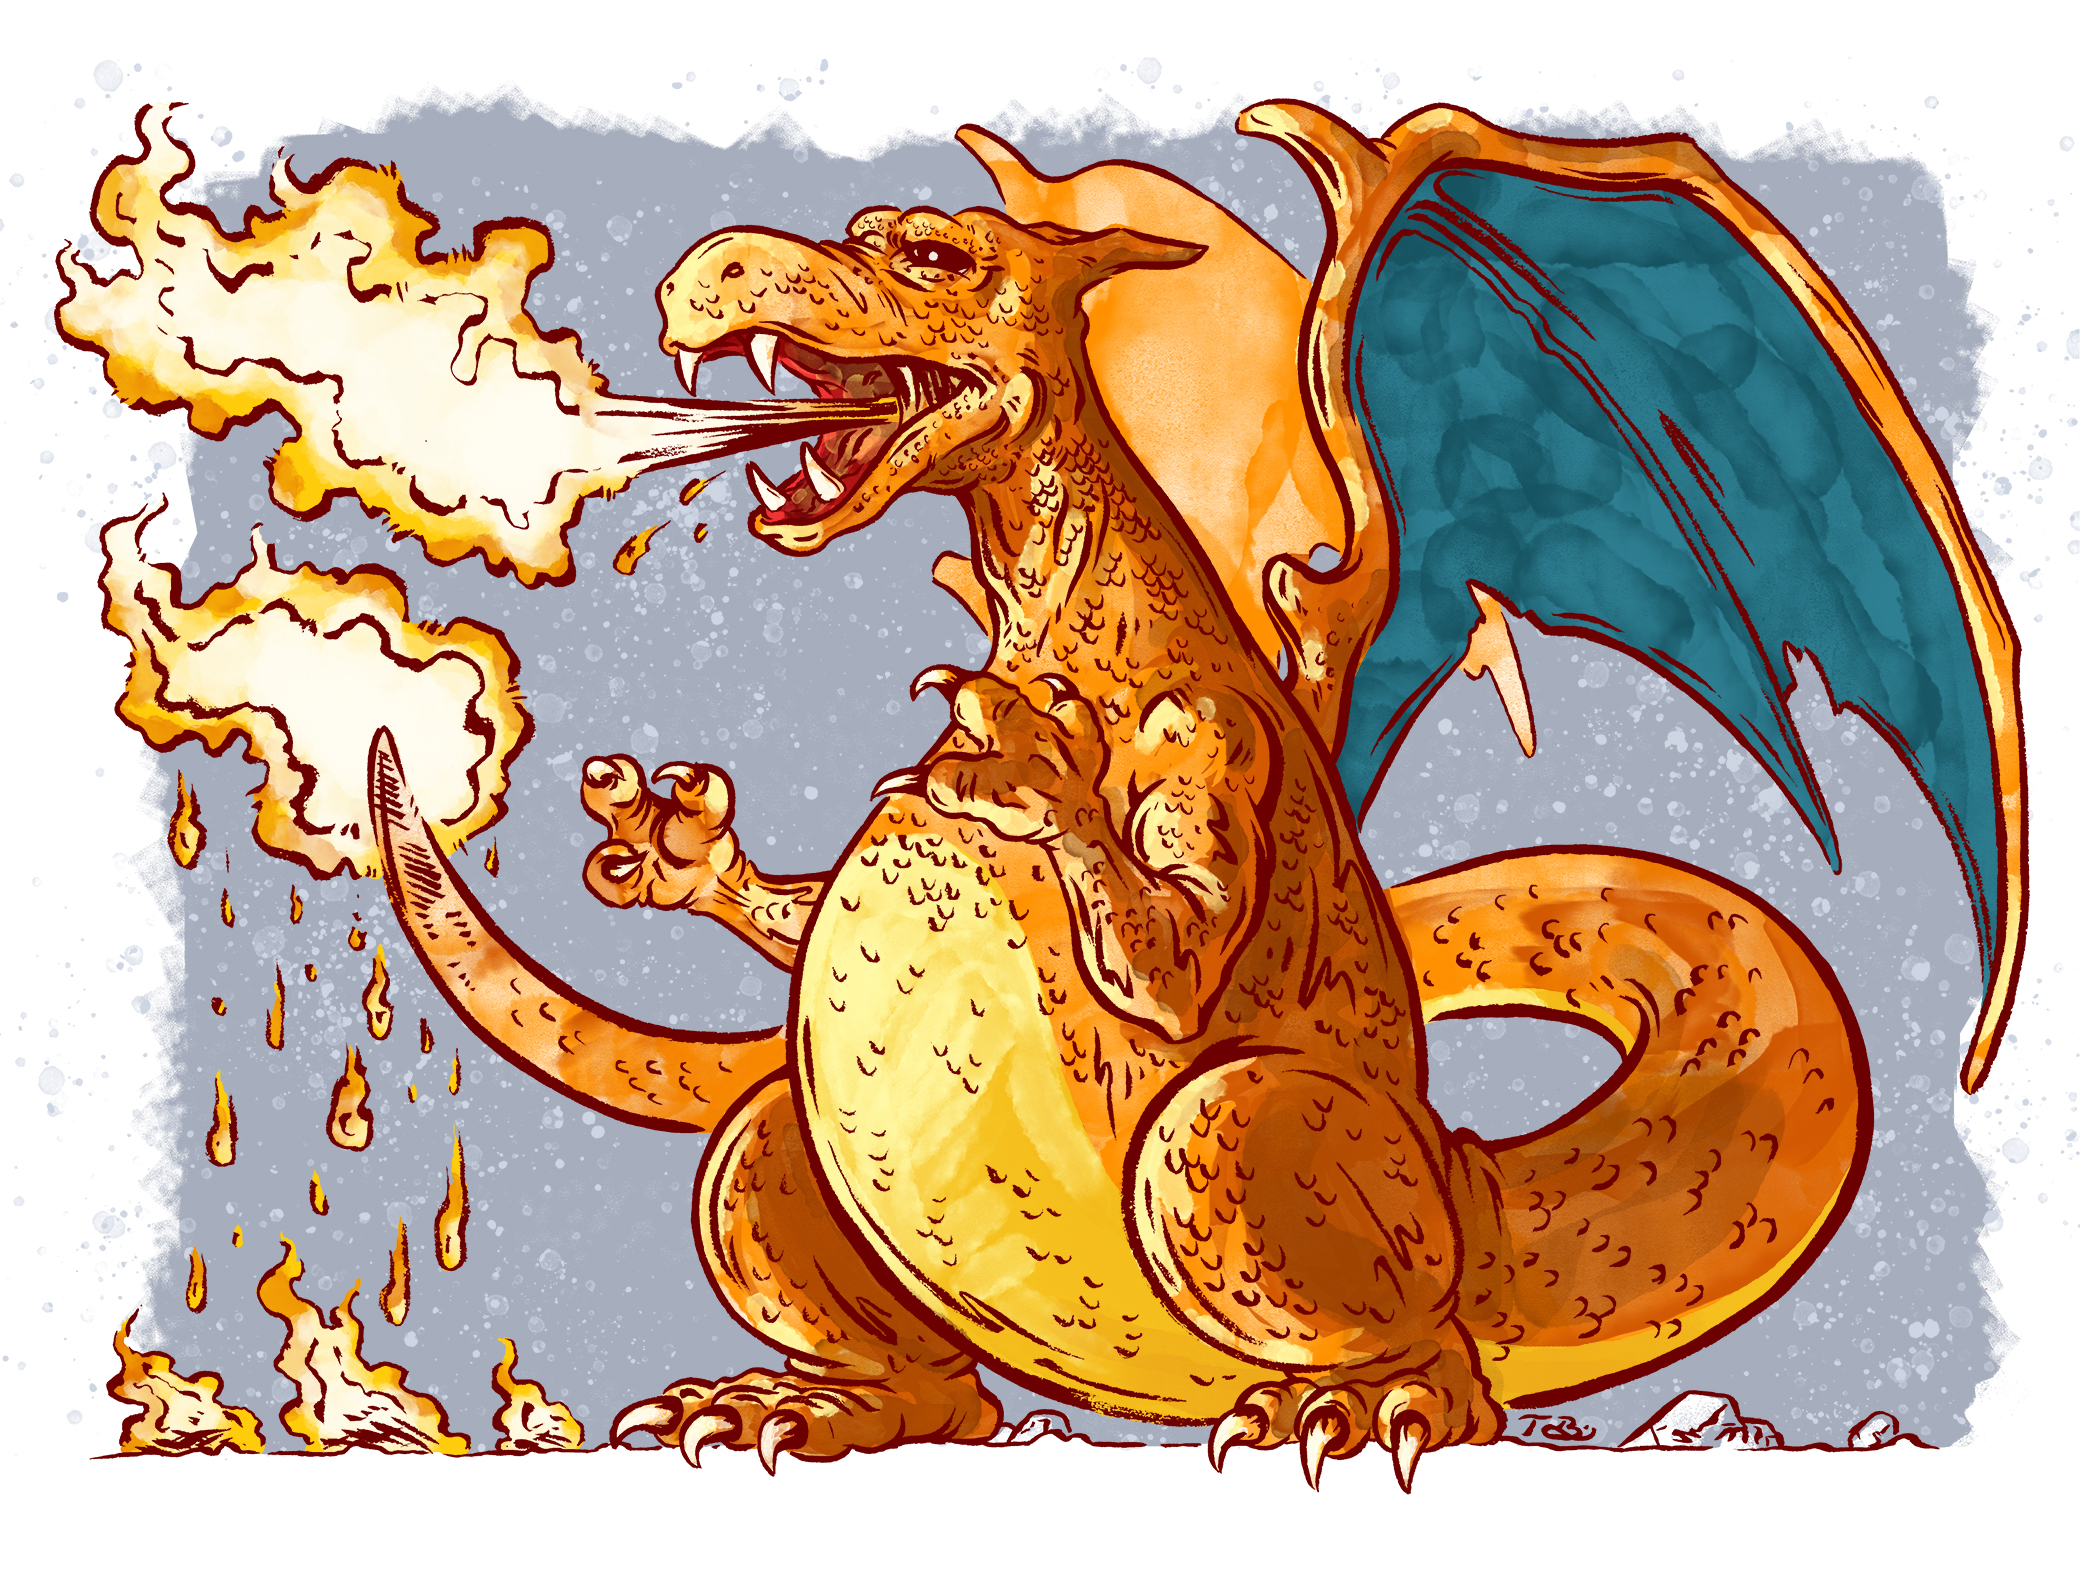 charizard_color_notext.jpg